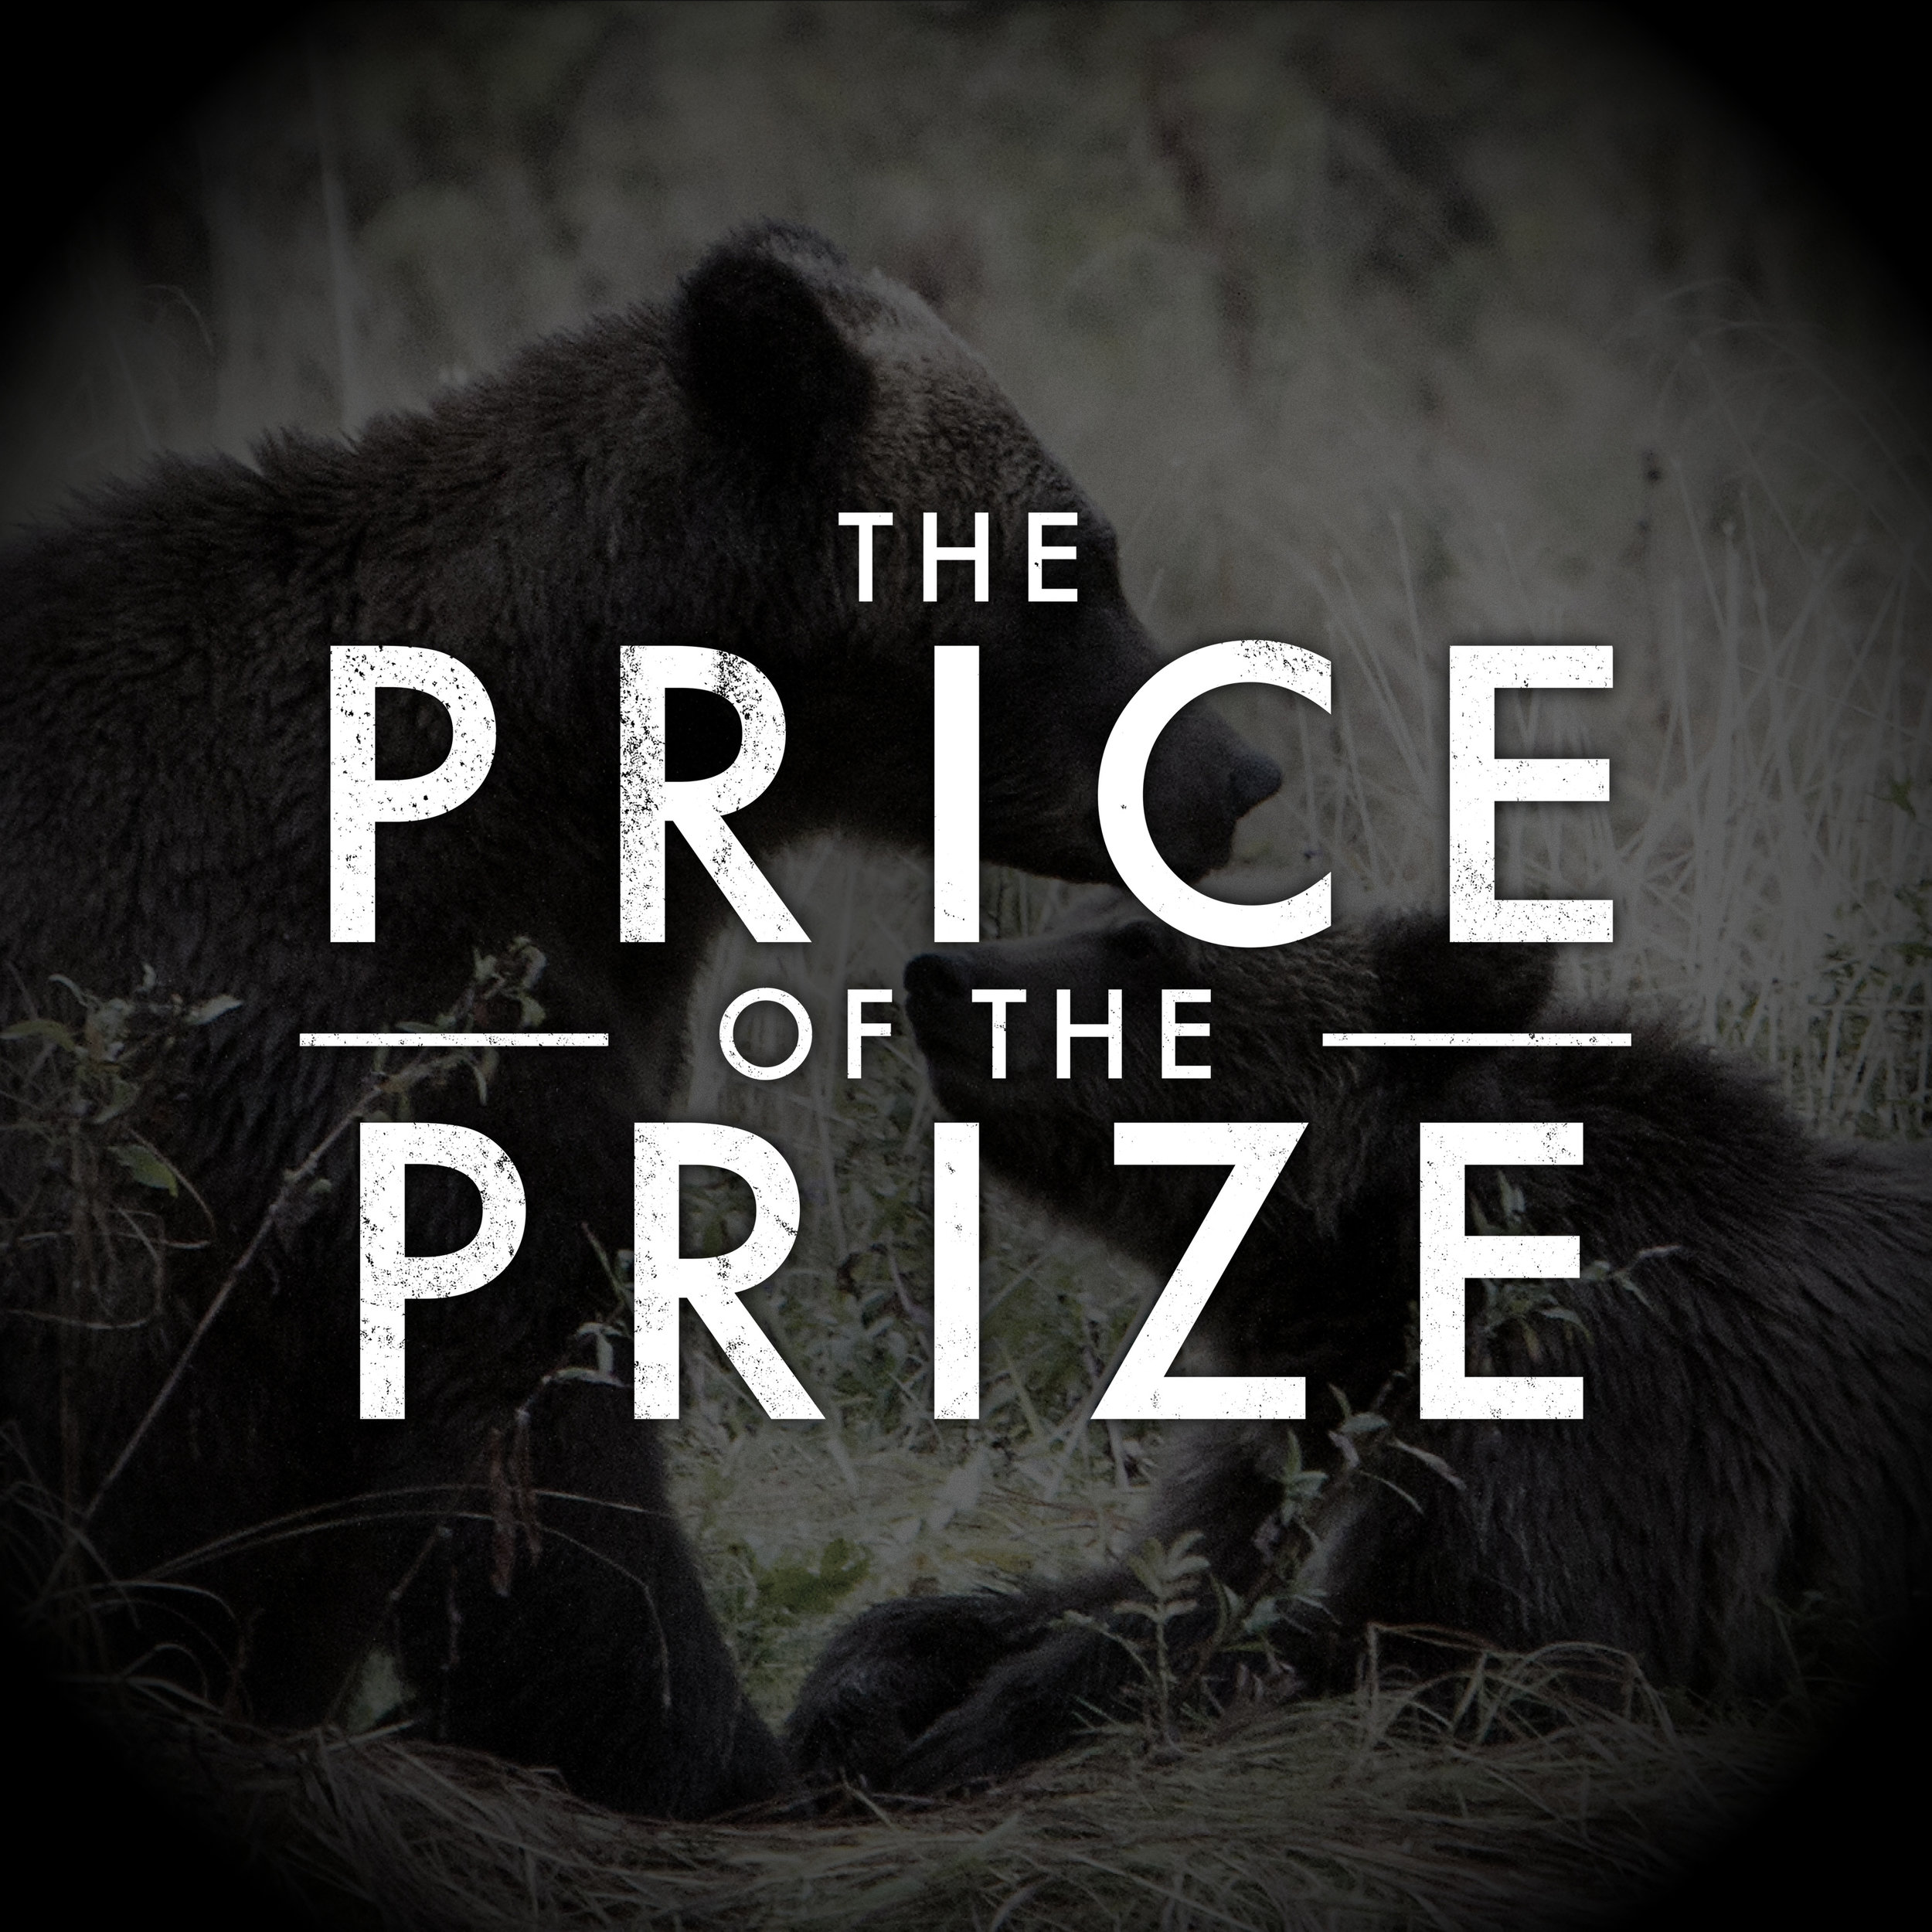 The Price of the Prize (2016)    The Price of the Prize  is a documentary about the fight to end grizzly bear trophy hunting in Canada's Great Bear Rainforest.   Learn More